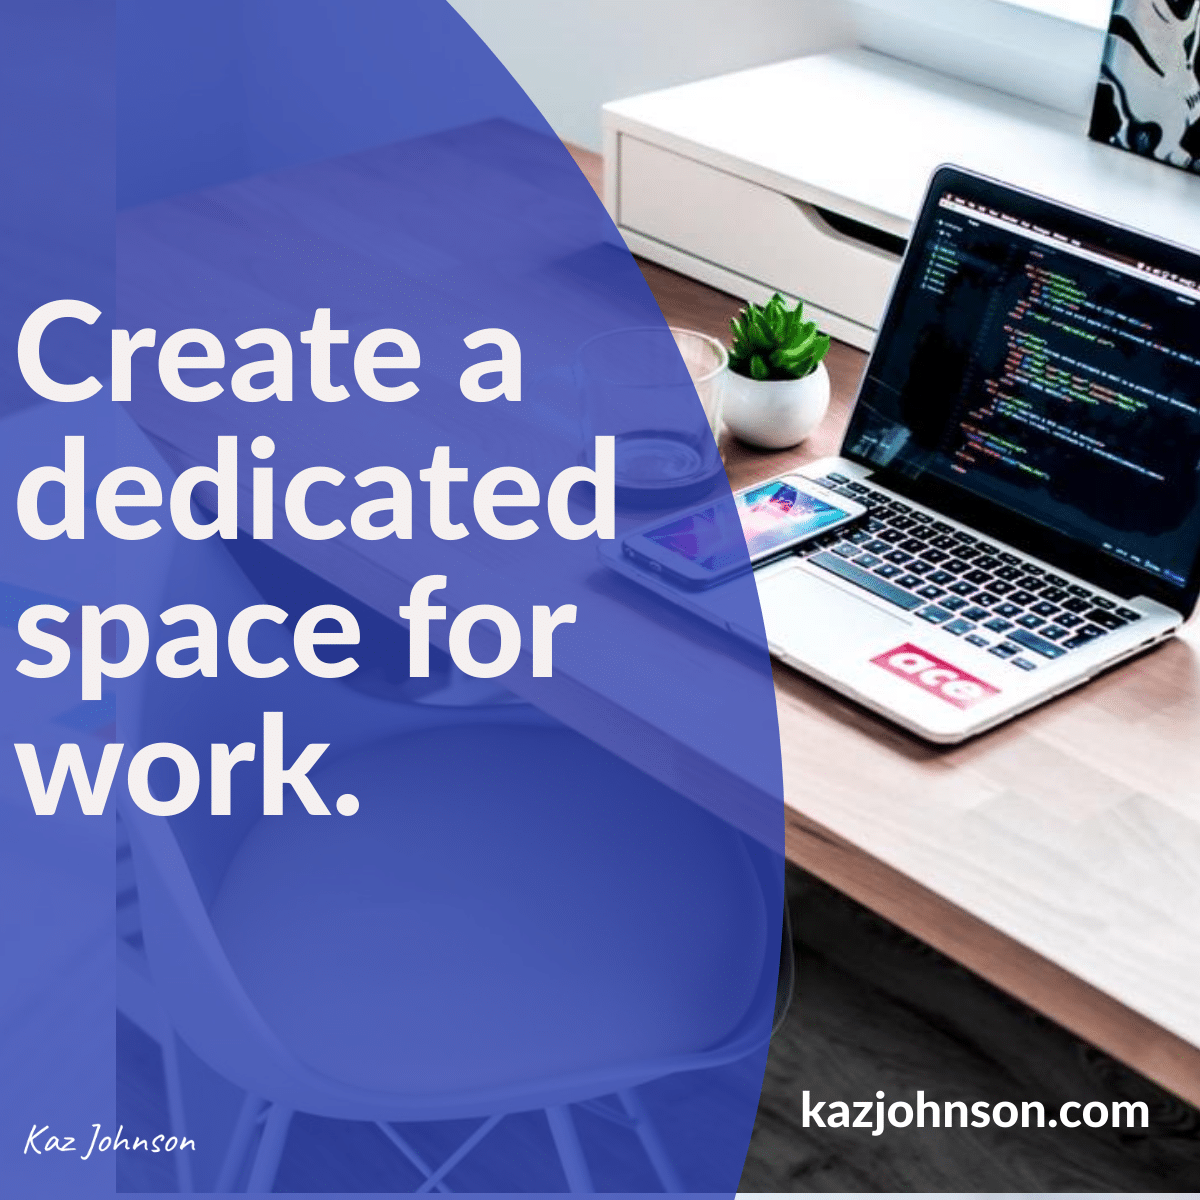 Create a dedicated space for work.